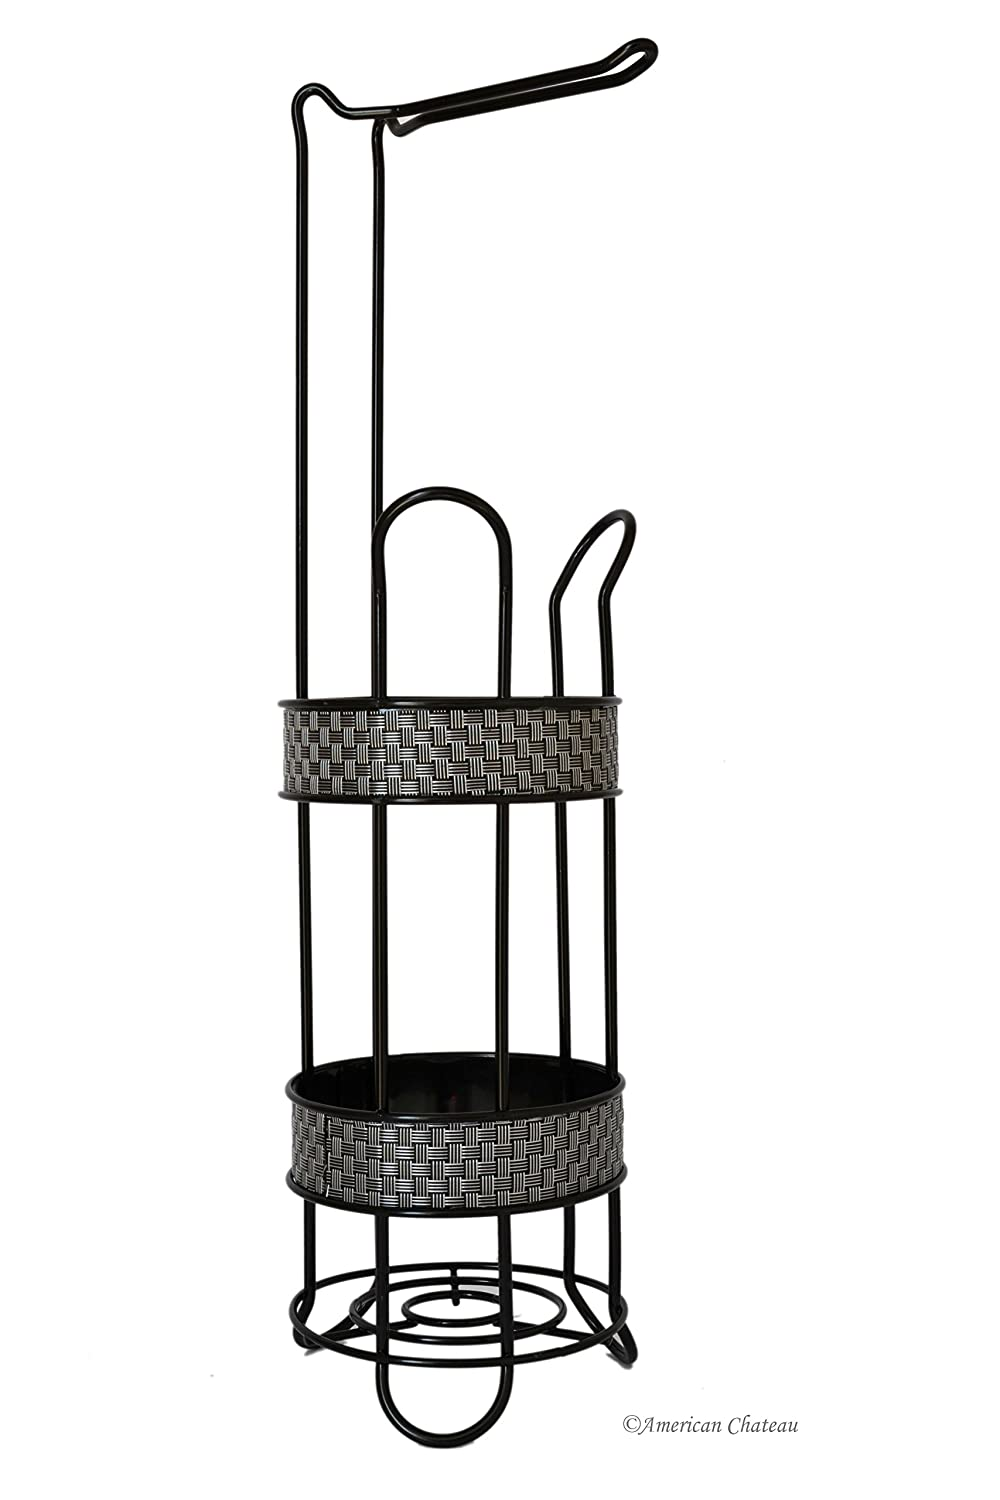 Basket Silver Weave Floor Black Metal Toilet Paper Roll Holder Storage & Stand American Chateau